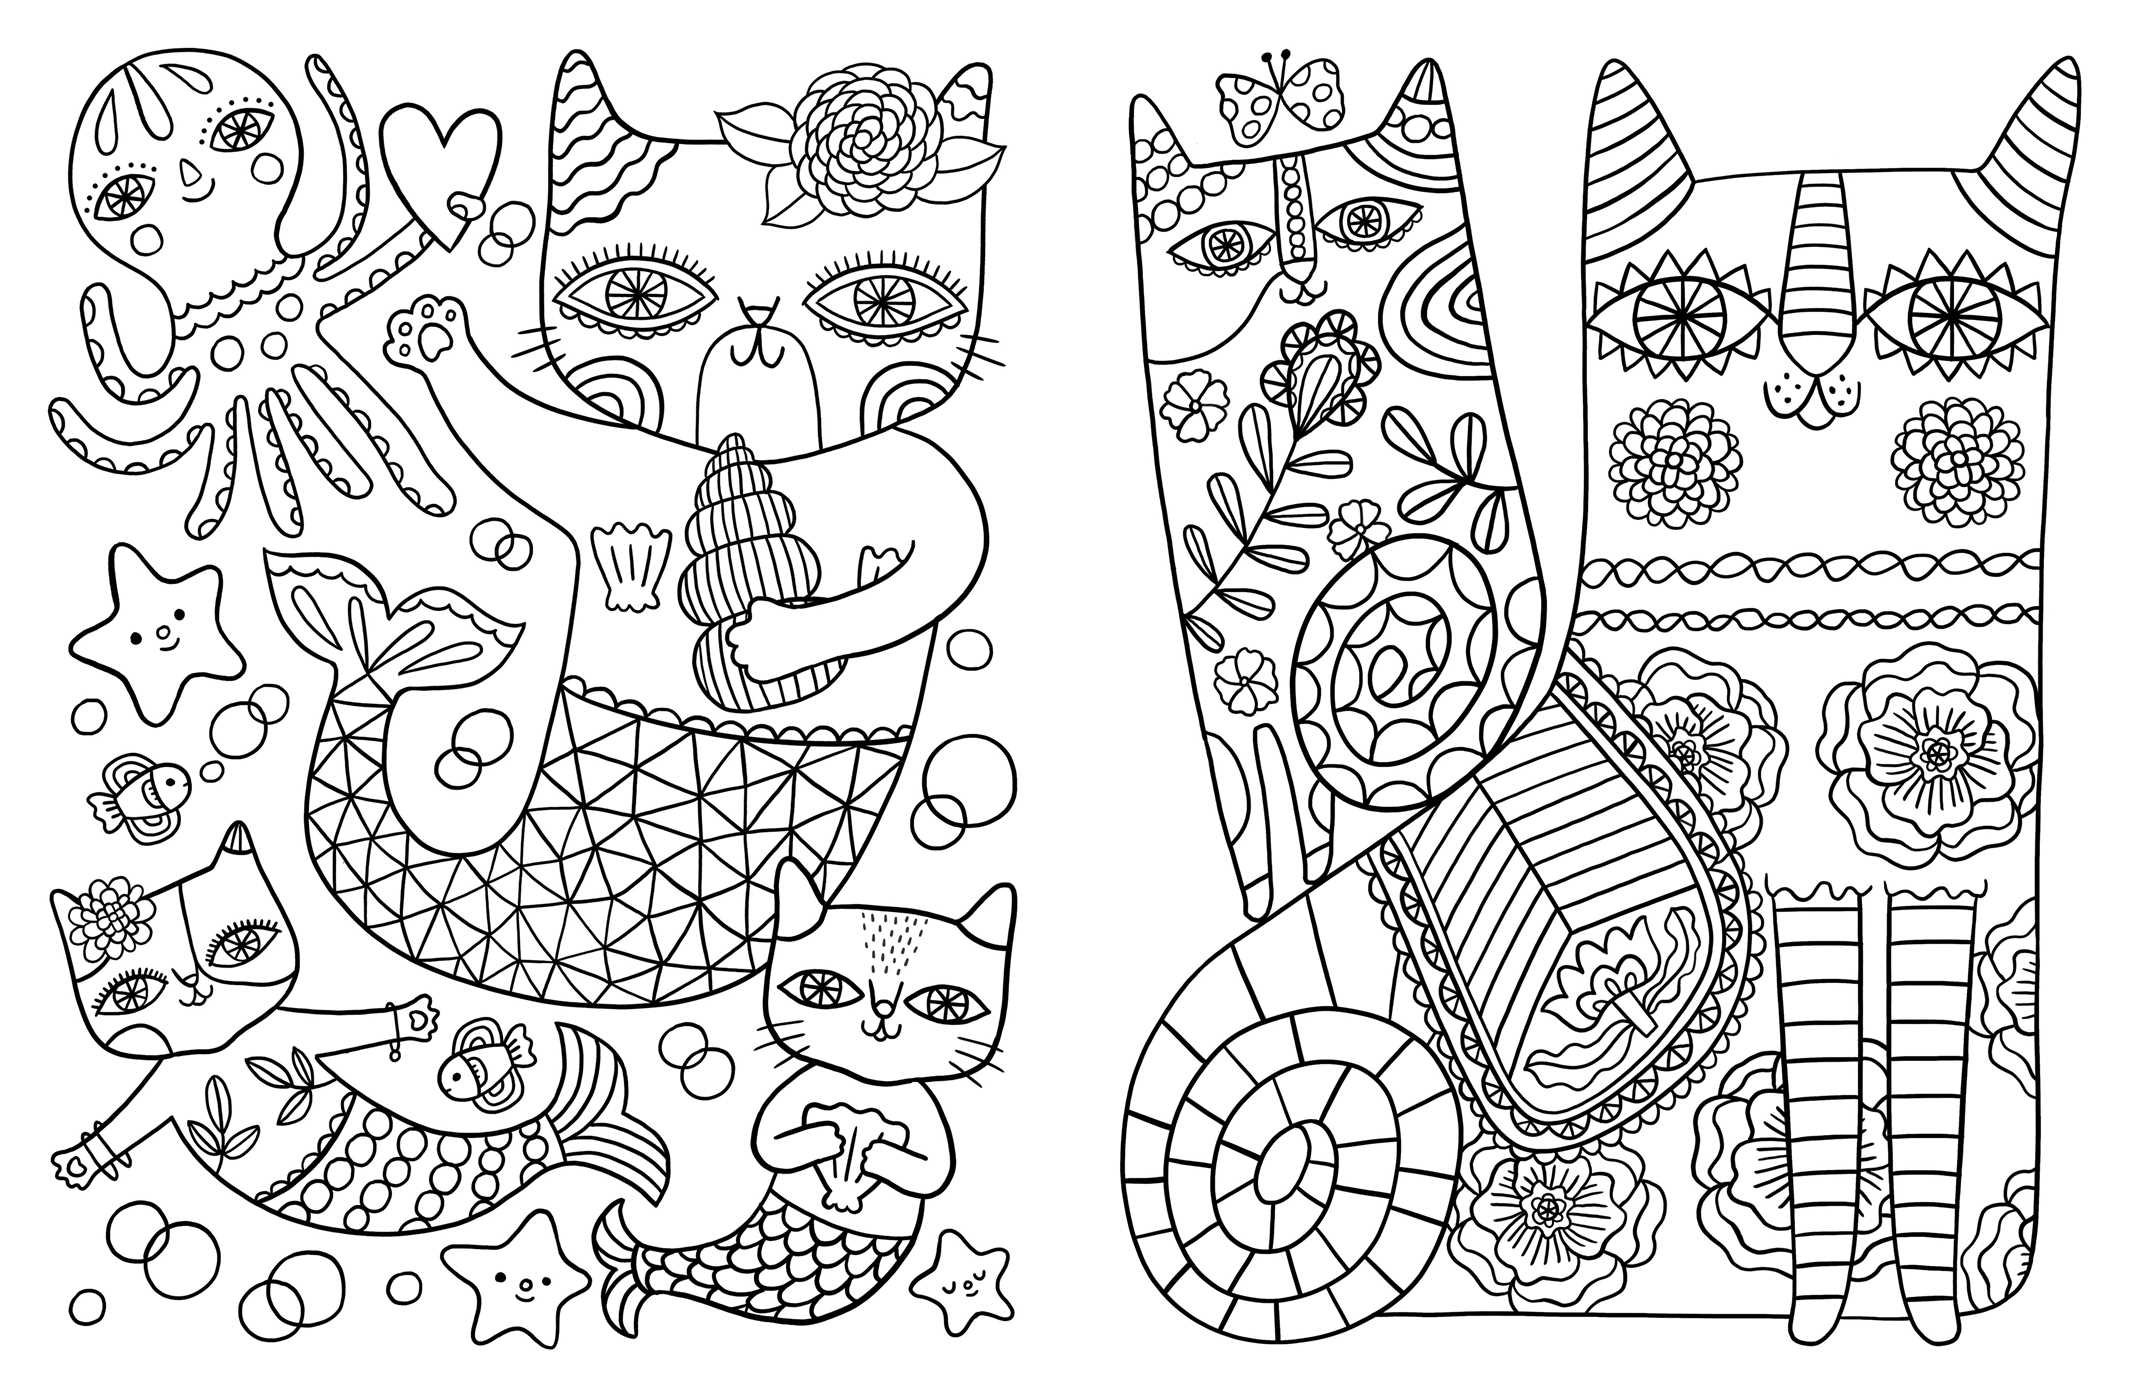 Amazon Posh Adult Coloring Book Cats Kittens for fort